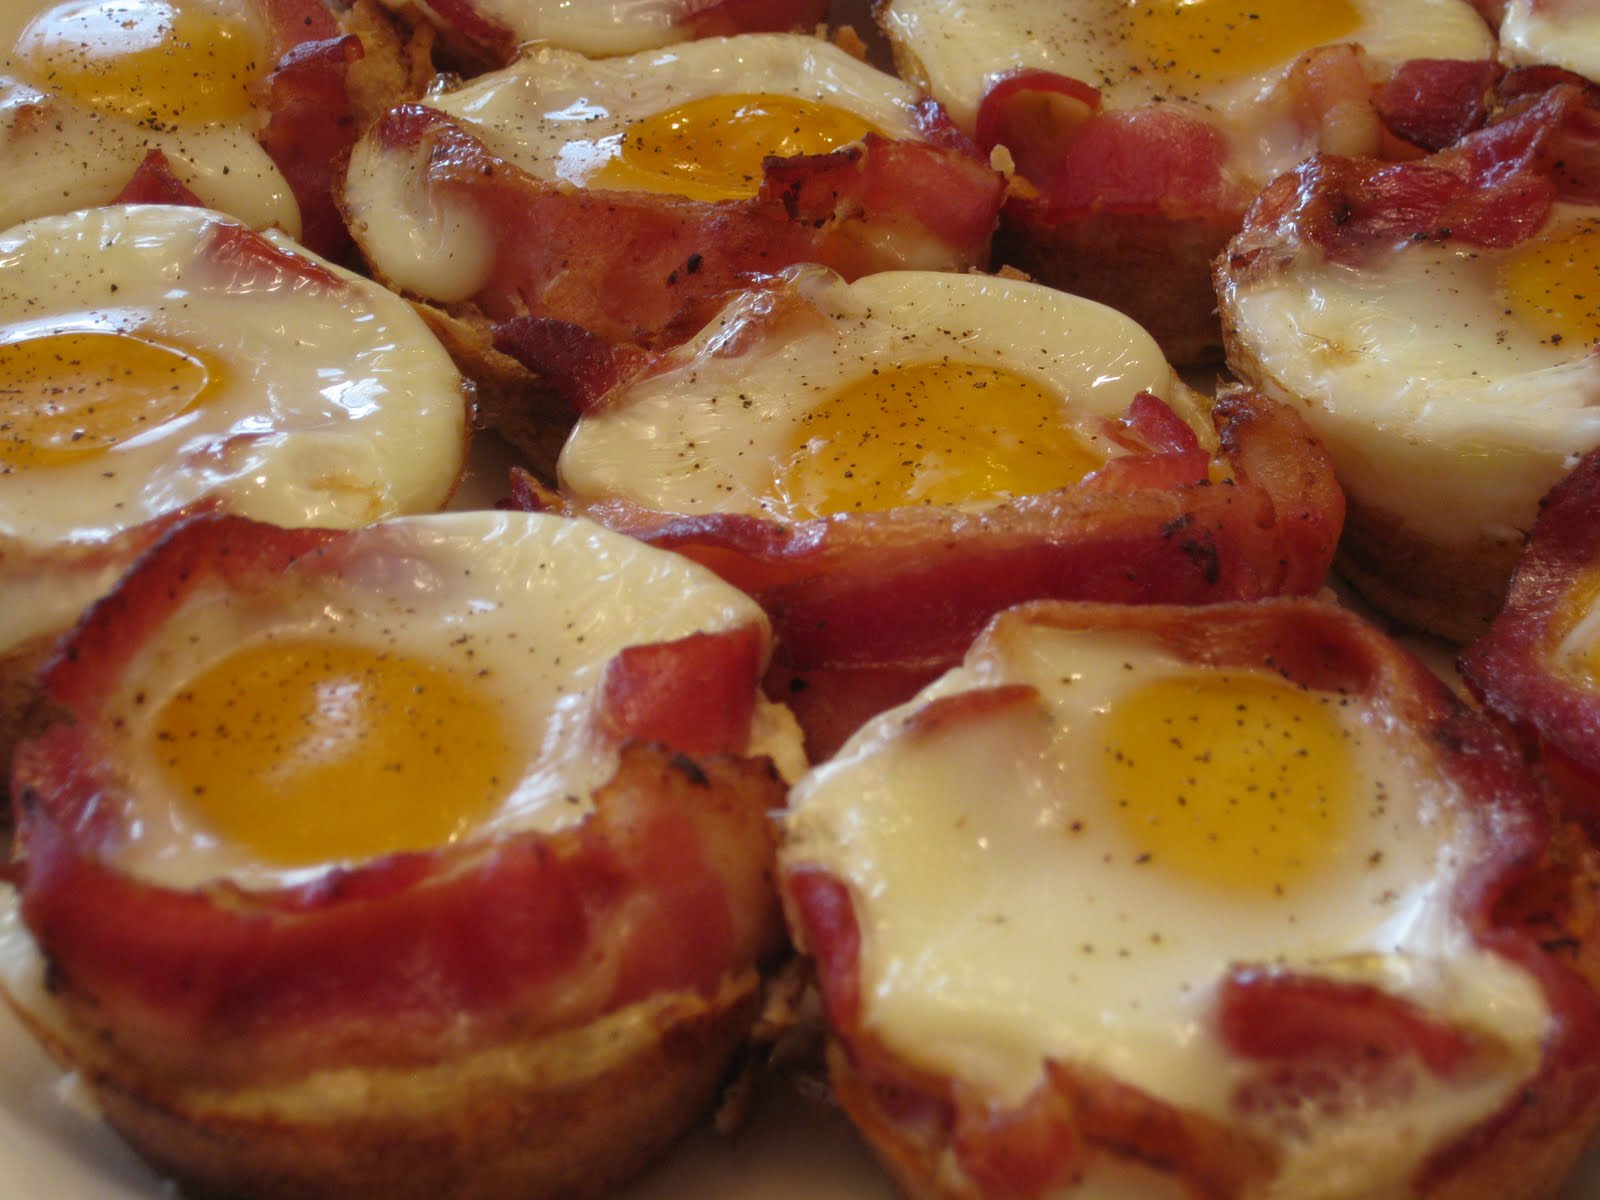 Cincy Dinner Club: Bacon Egg and Toast Cups